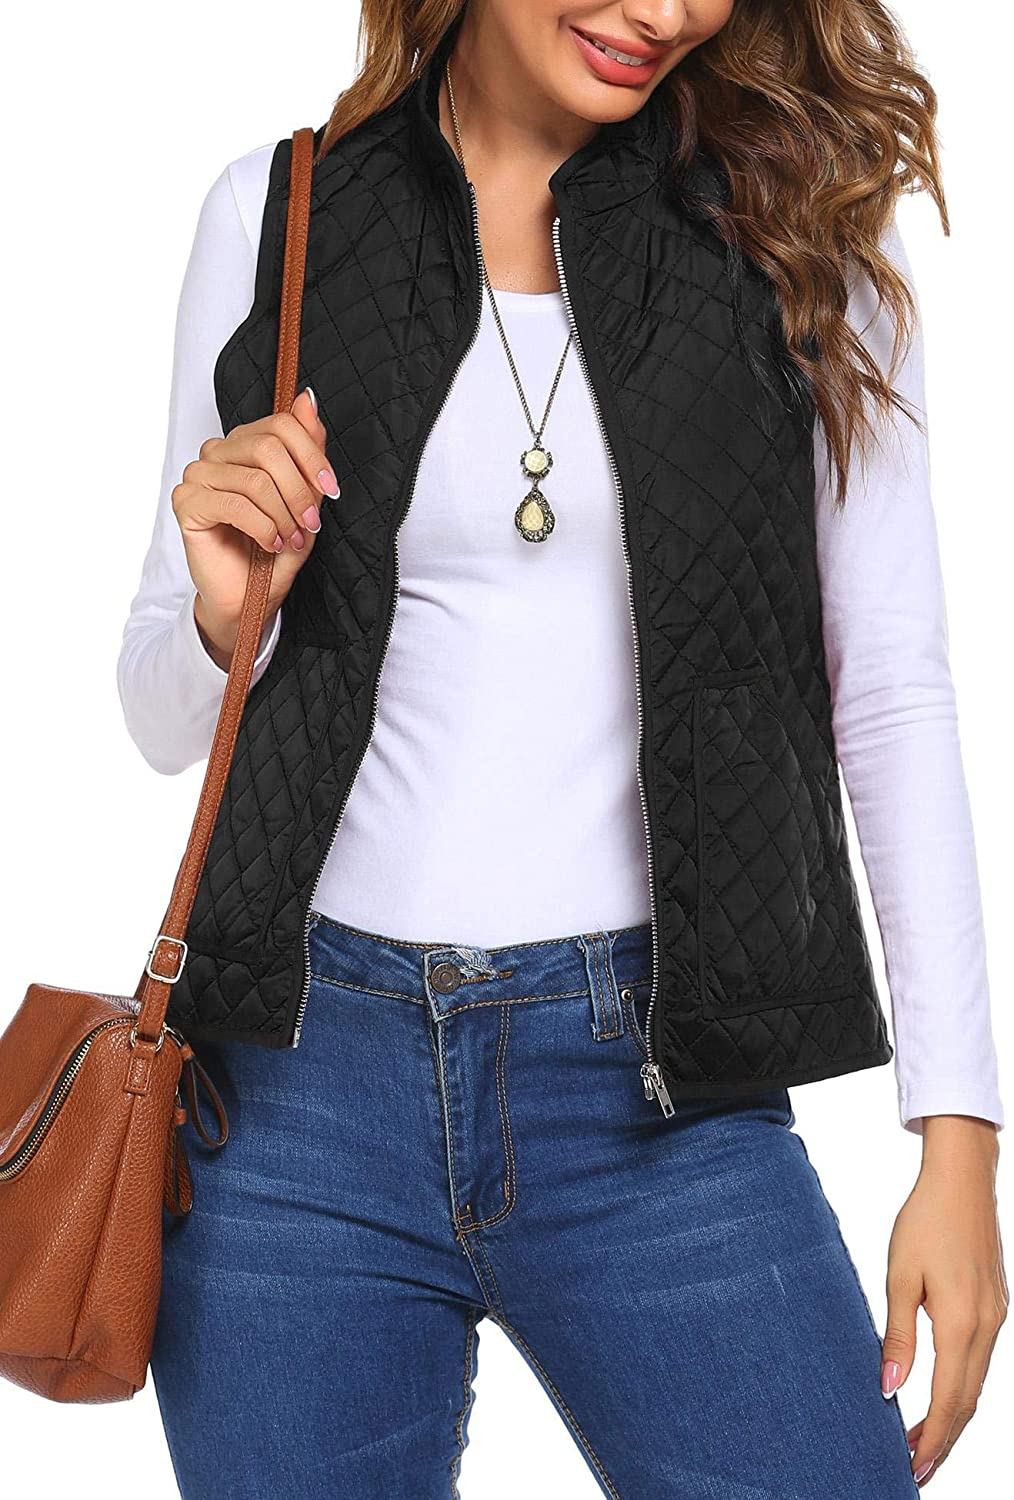 HOTLOOX Women's Quilted Vest Outwear Sleeveless Stand Collar Lightweight Zip Down Padded Puffer Gilet with Pocket S-XXL